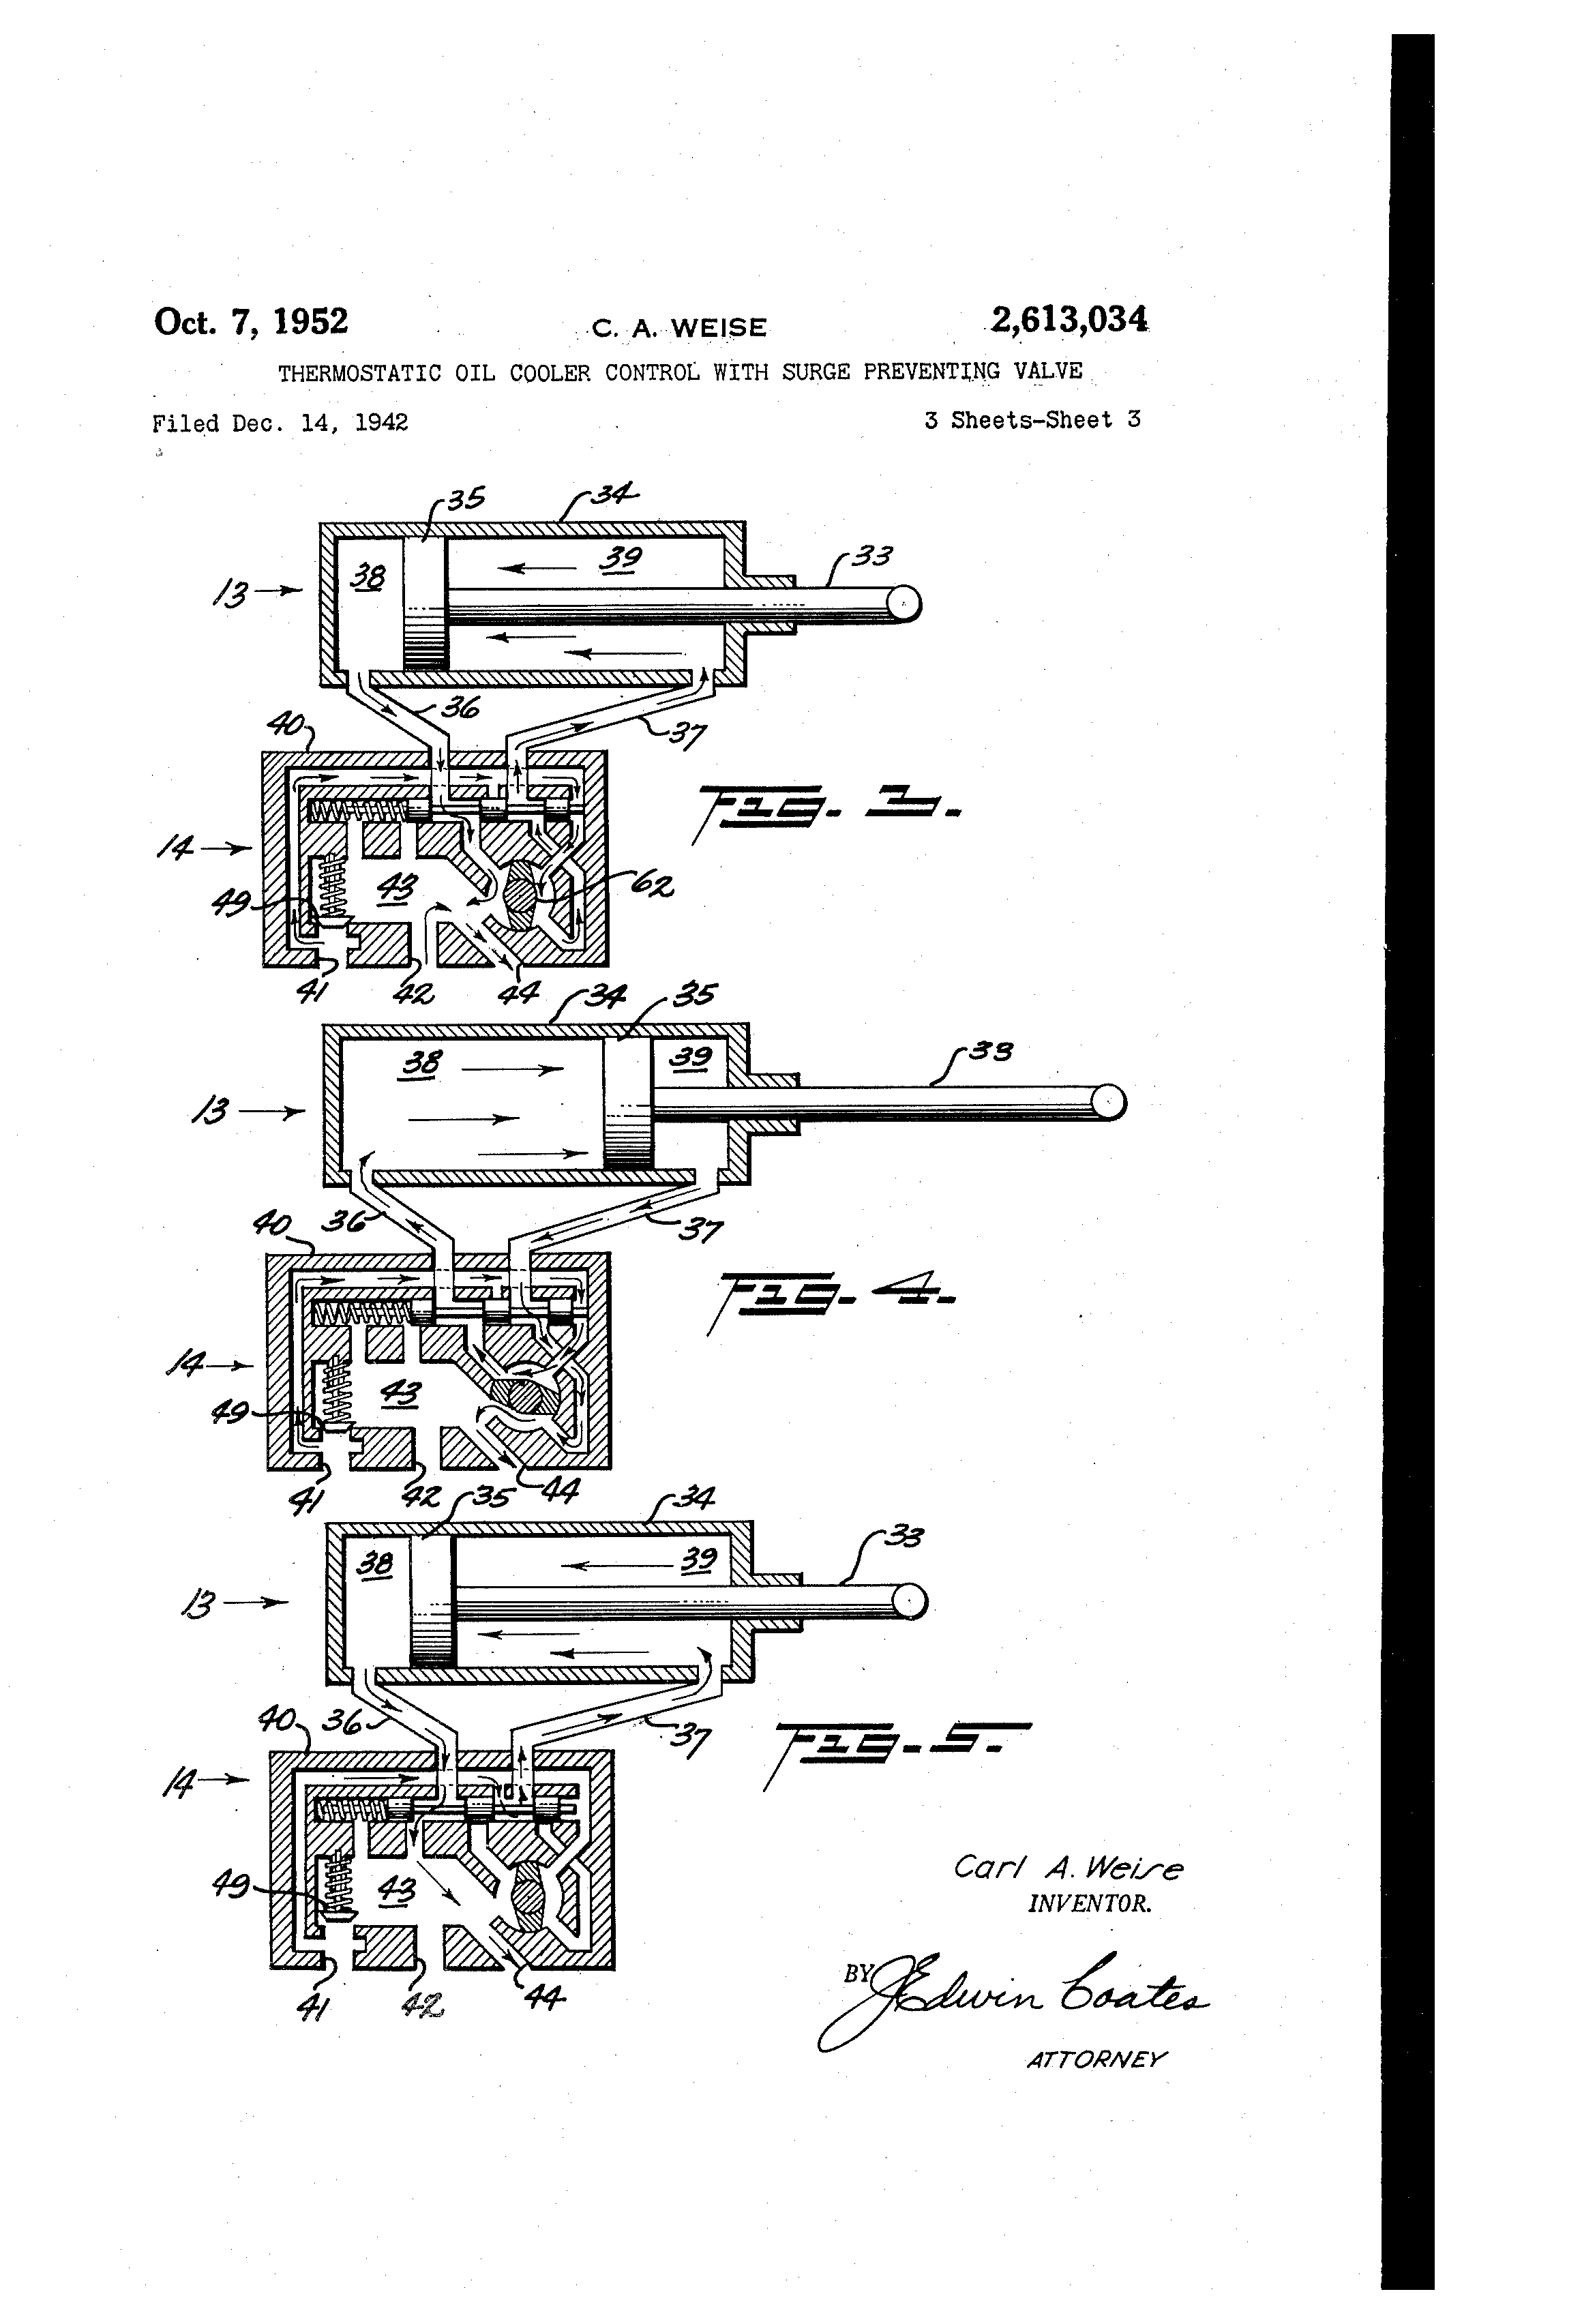 patent us2613034 - thermostatic oil cooler control with surge preventing valve